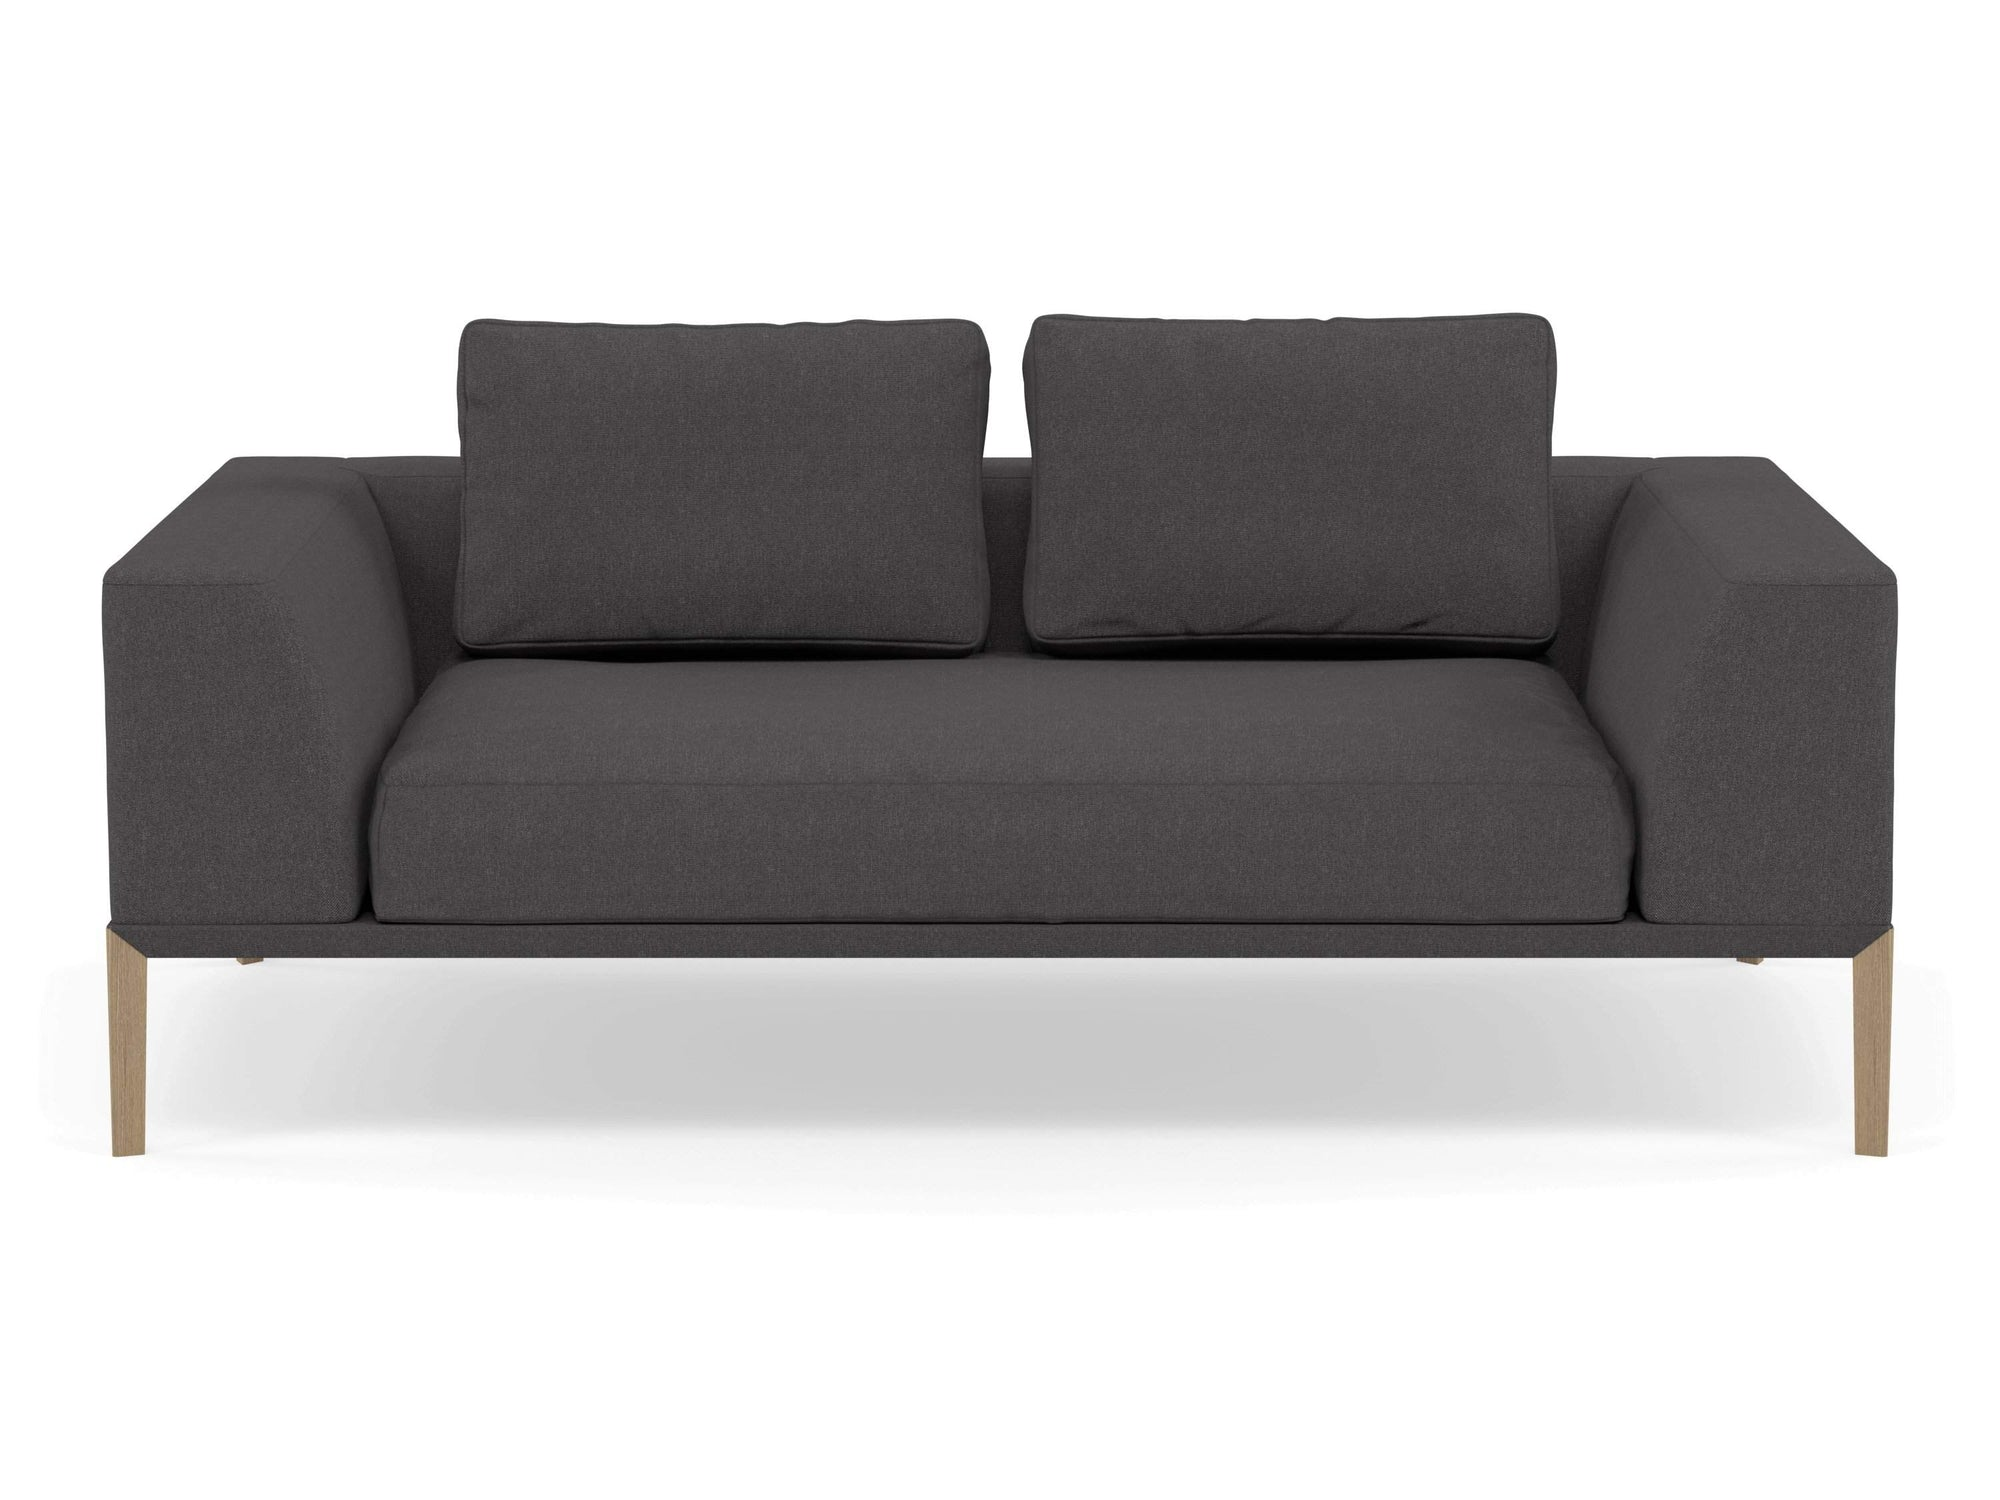 Modern 2 Seater Sofa with 2 Armrests in Slate Grey Fabric-Natural Oak-Distinct Designs (London) Ltd